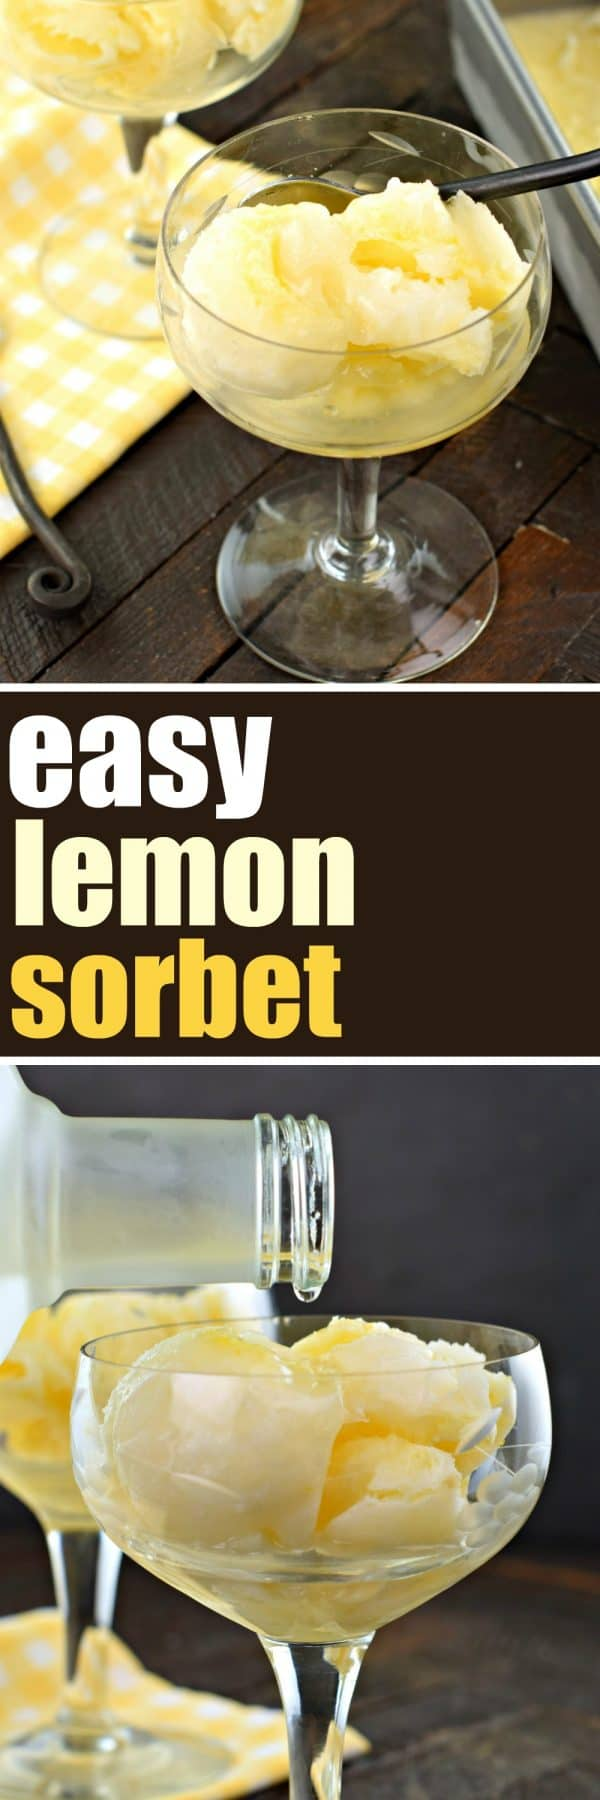 Smooth, sweet, and tart describe this deliciously, Easy Lemon Sorbet recipe! No ice cream maker needed! Add an optional shot of vodka for the perfect palate cleanser! #princesscruises #sponsored #lemon #sorbet #easyrecipe